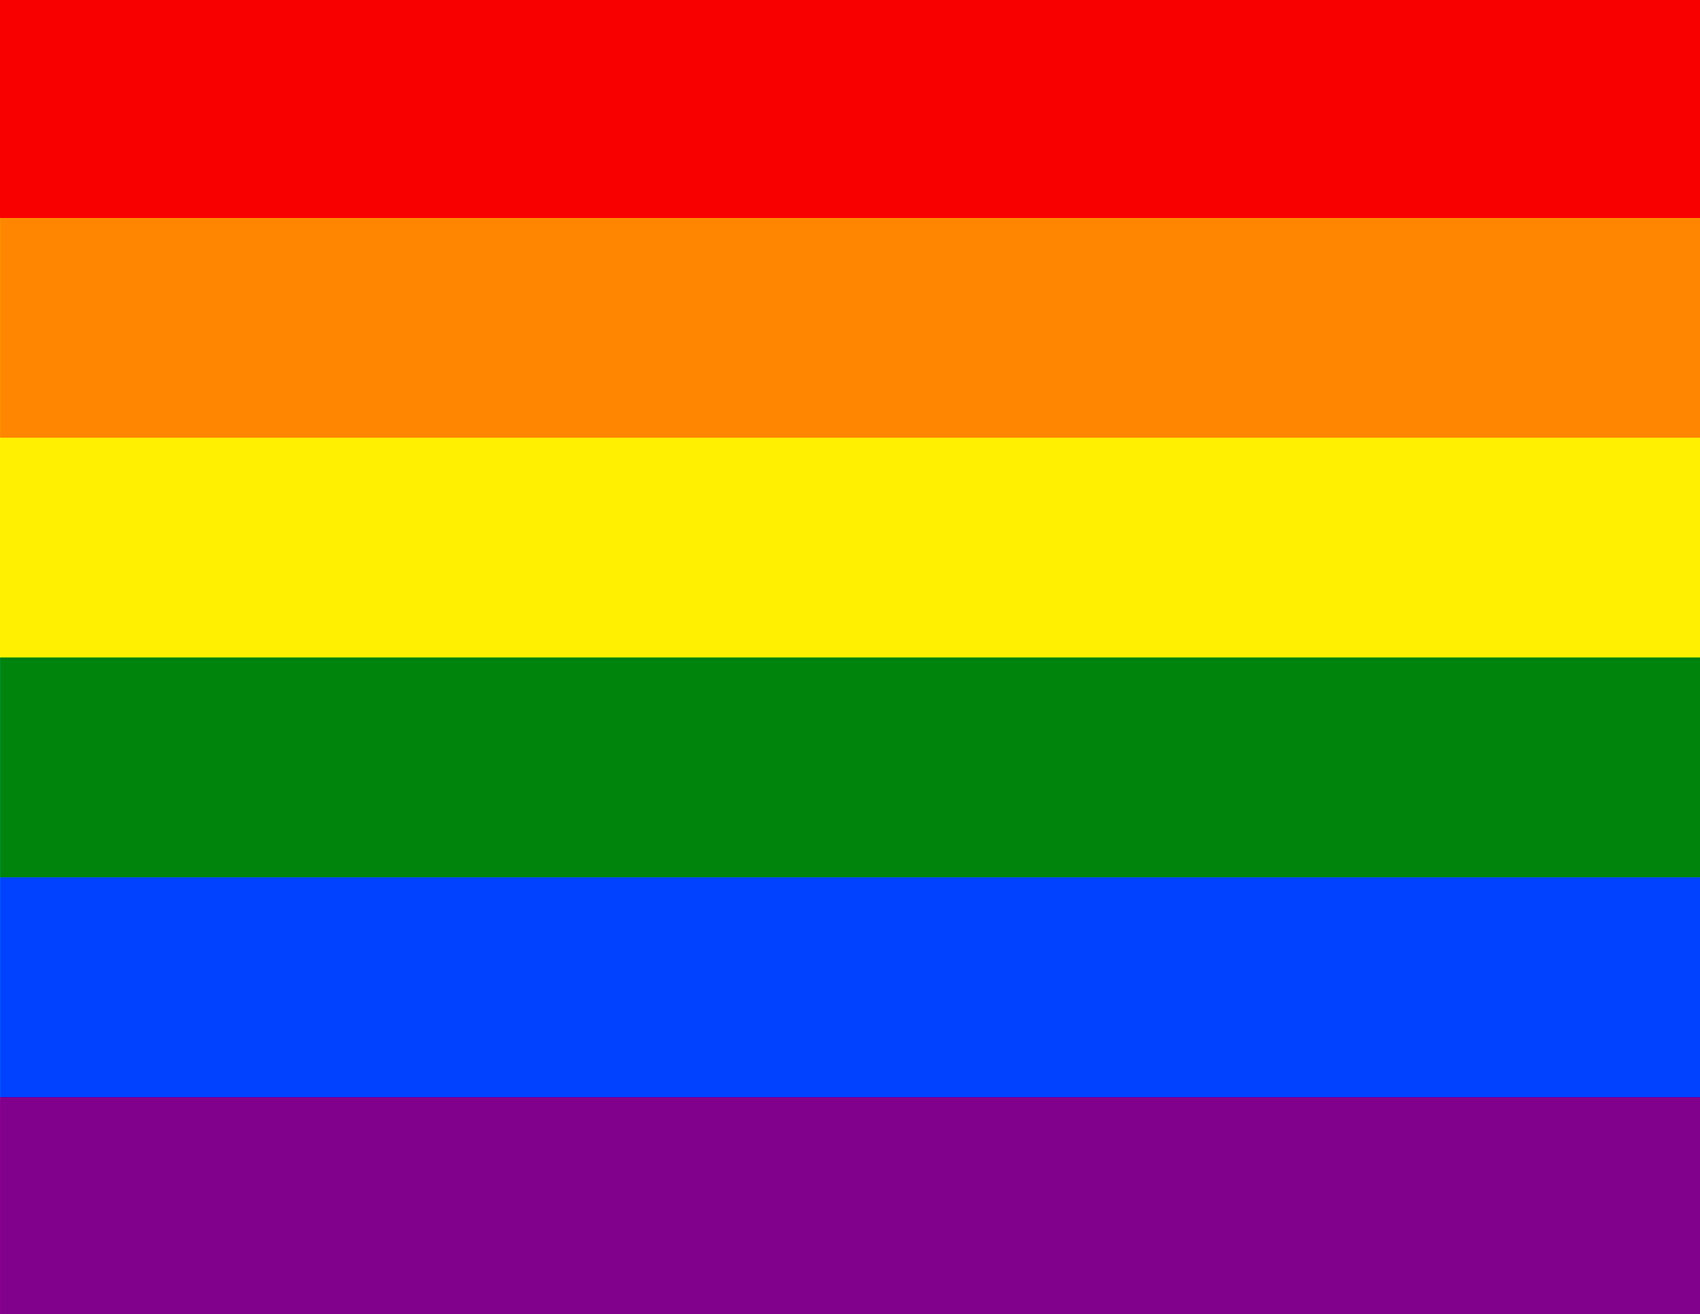 button for LGBTIQ Resources showing the flag